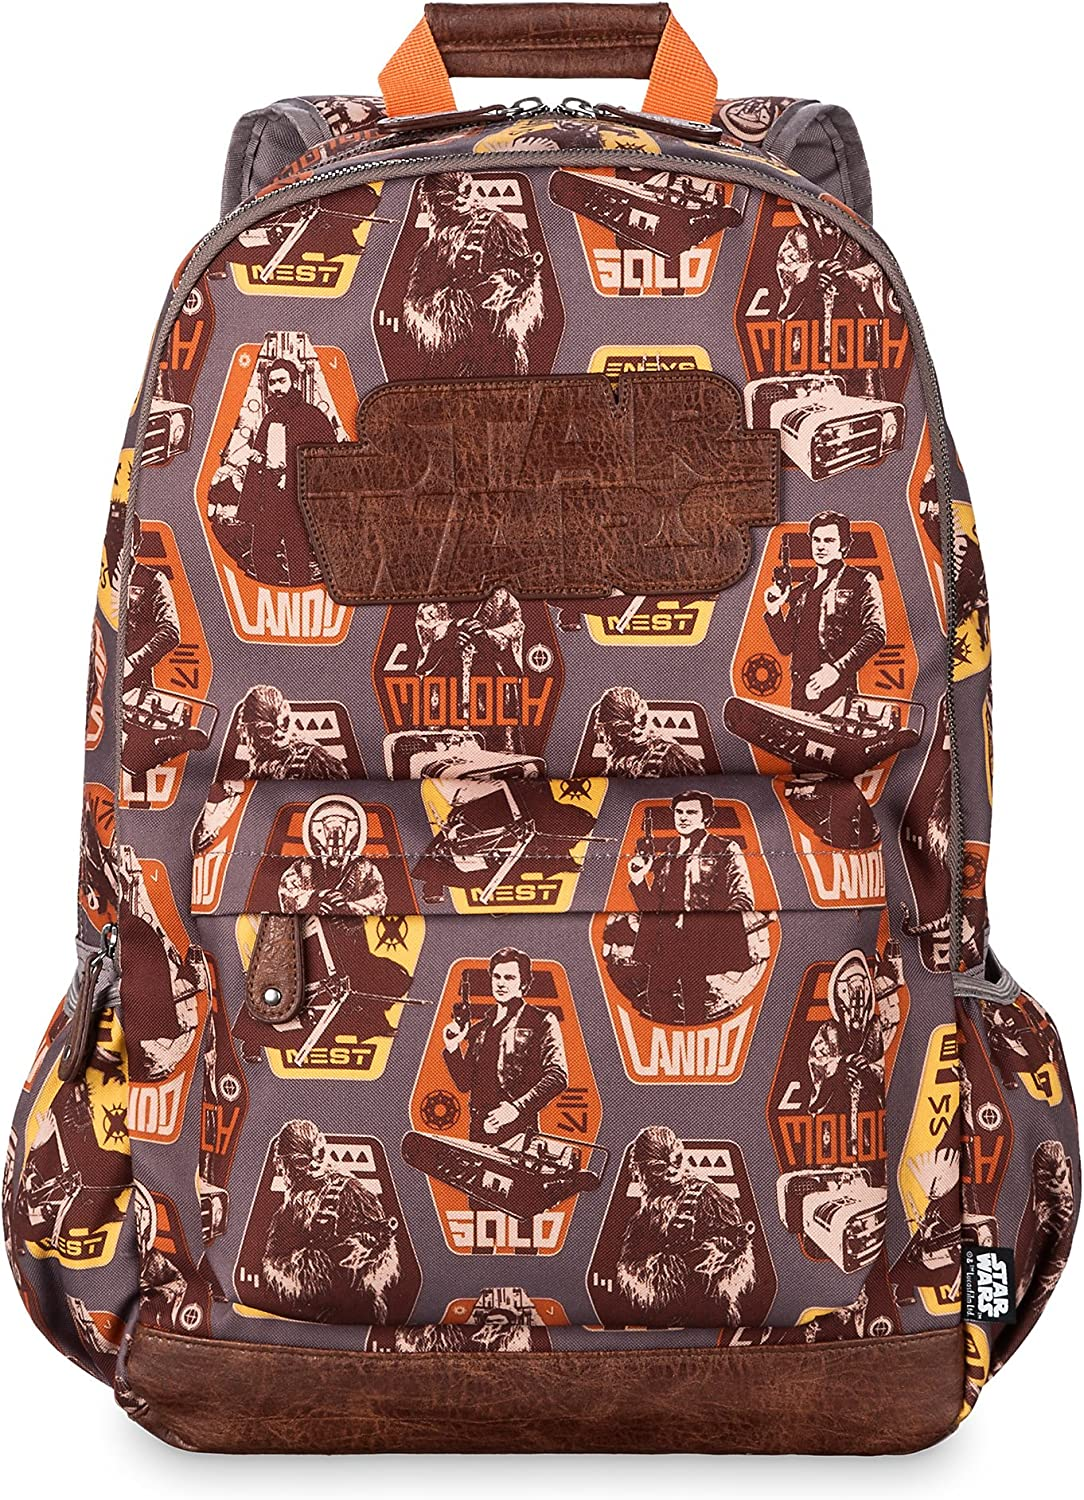 Star Wars Solo A Star Wars Story Backpack for Adults